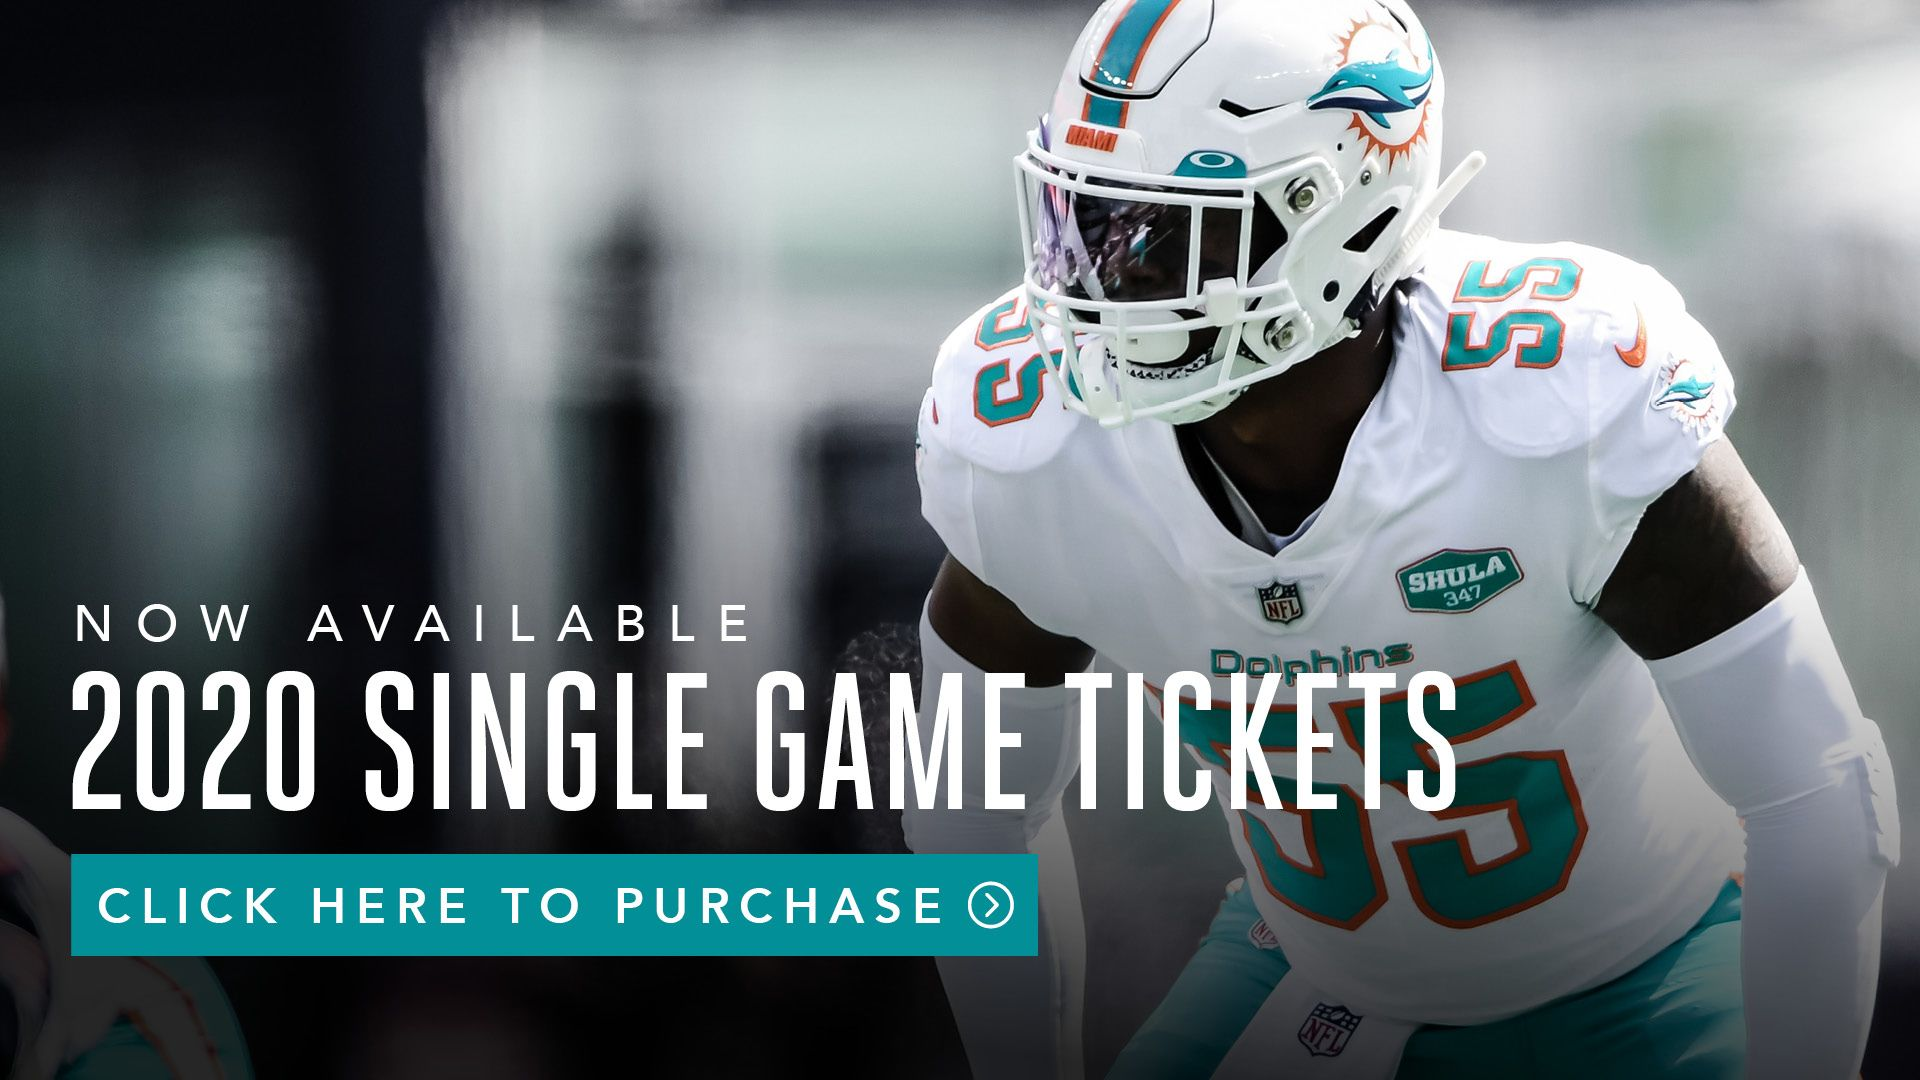 Click Here To Purchase Single Game Tickets